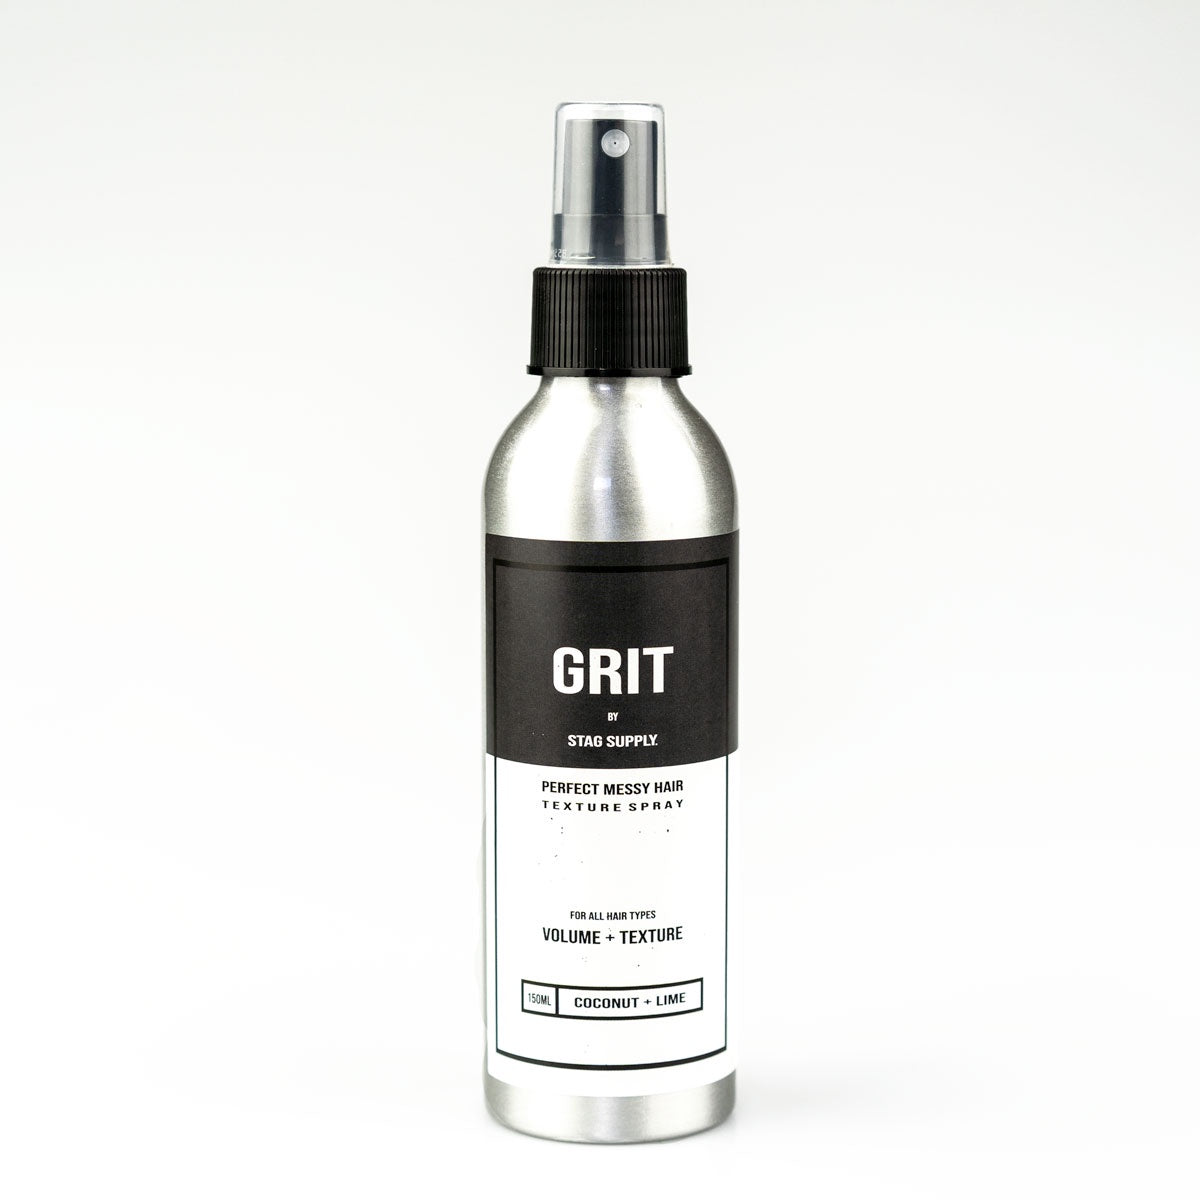 Stag Supply GRIT Texture Spray 150ml